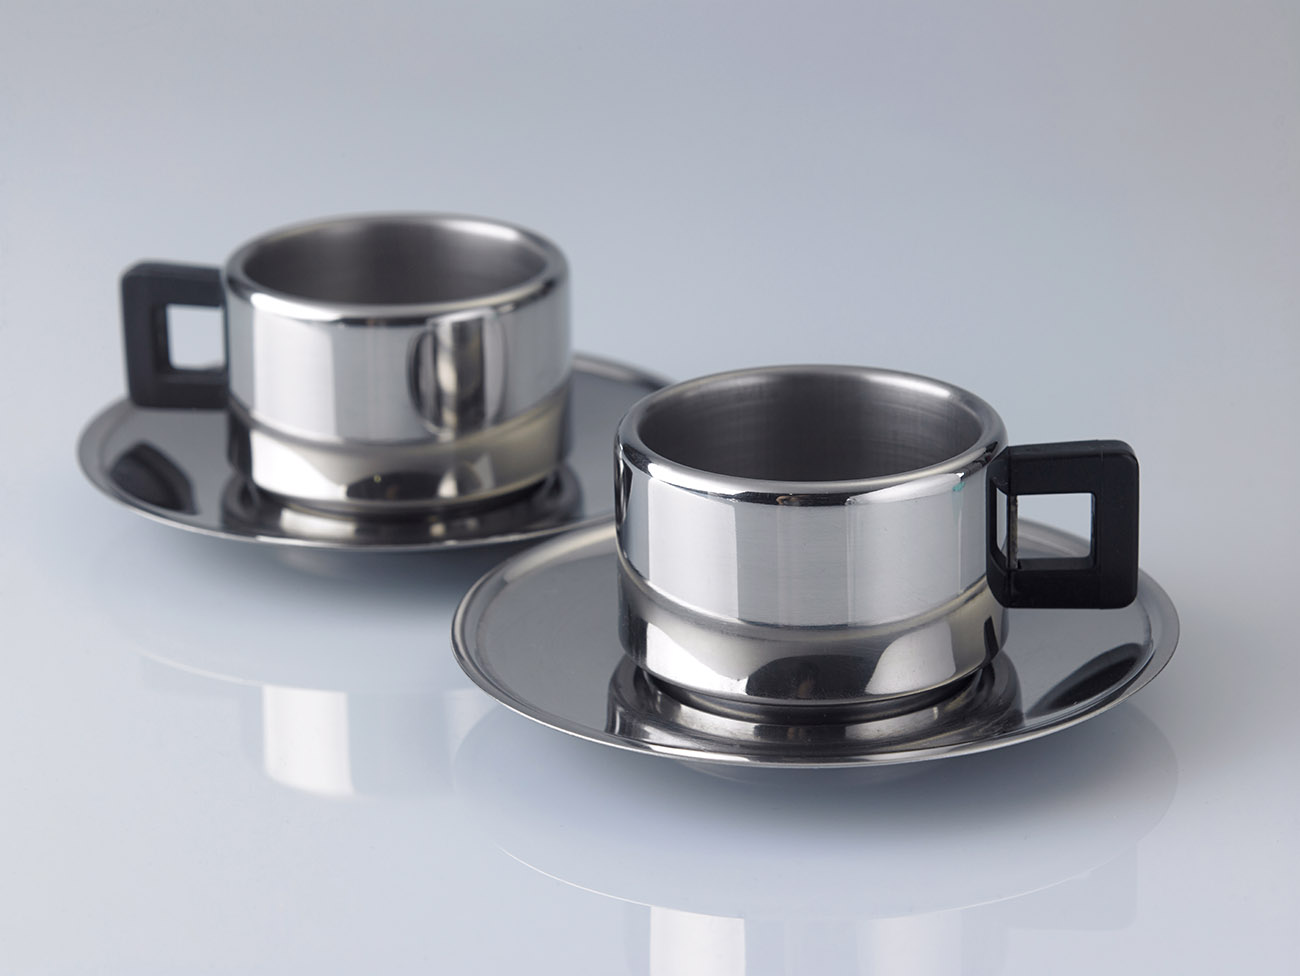 Stainless-steel mug